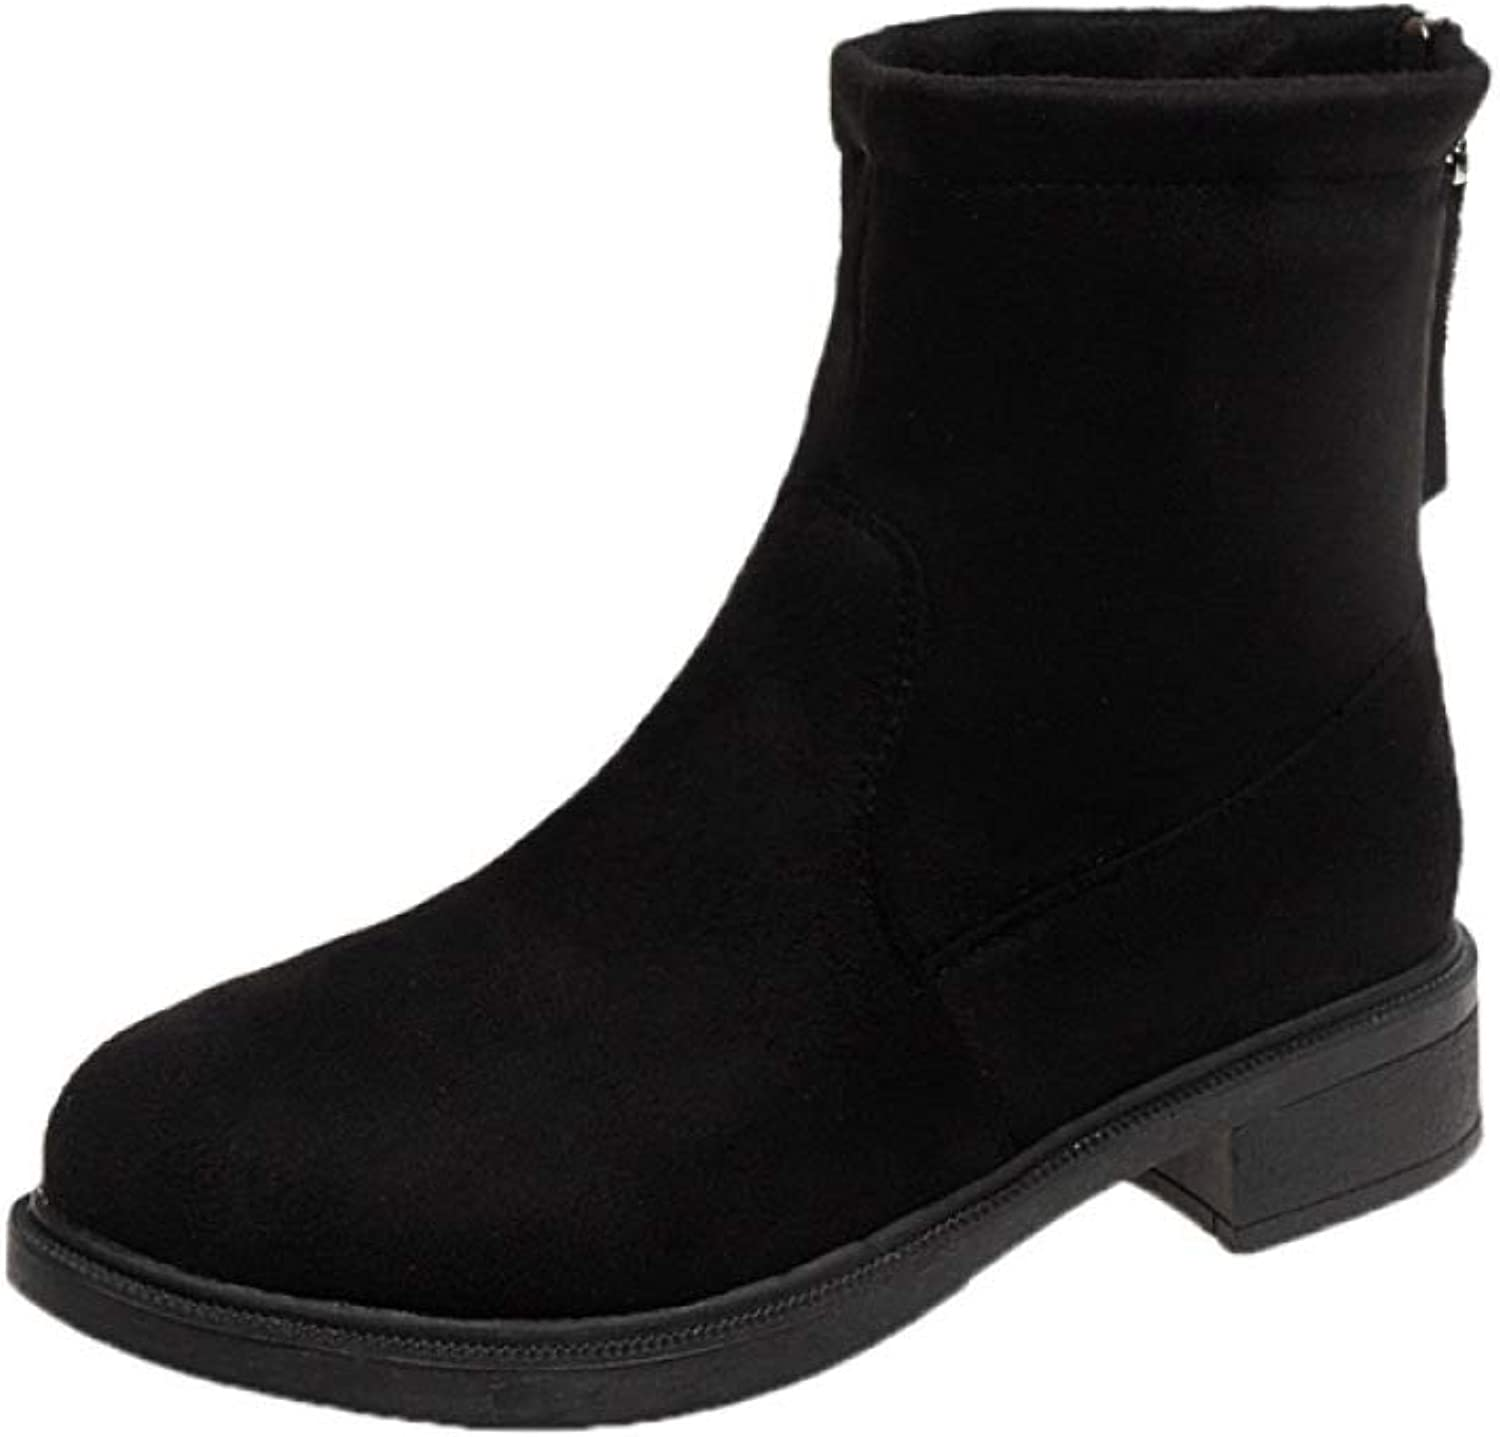 LXIANGP Women's Boots,Snow Boots Boots Elastic Comfortable Thick Spring and Autumn Winter Boots Low Heel Wild Fashion shoes Ladies (35EU-40EU)